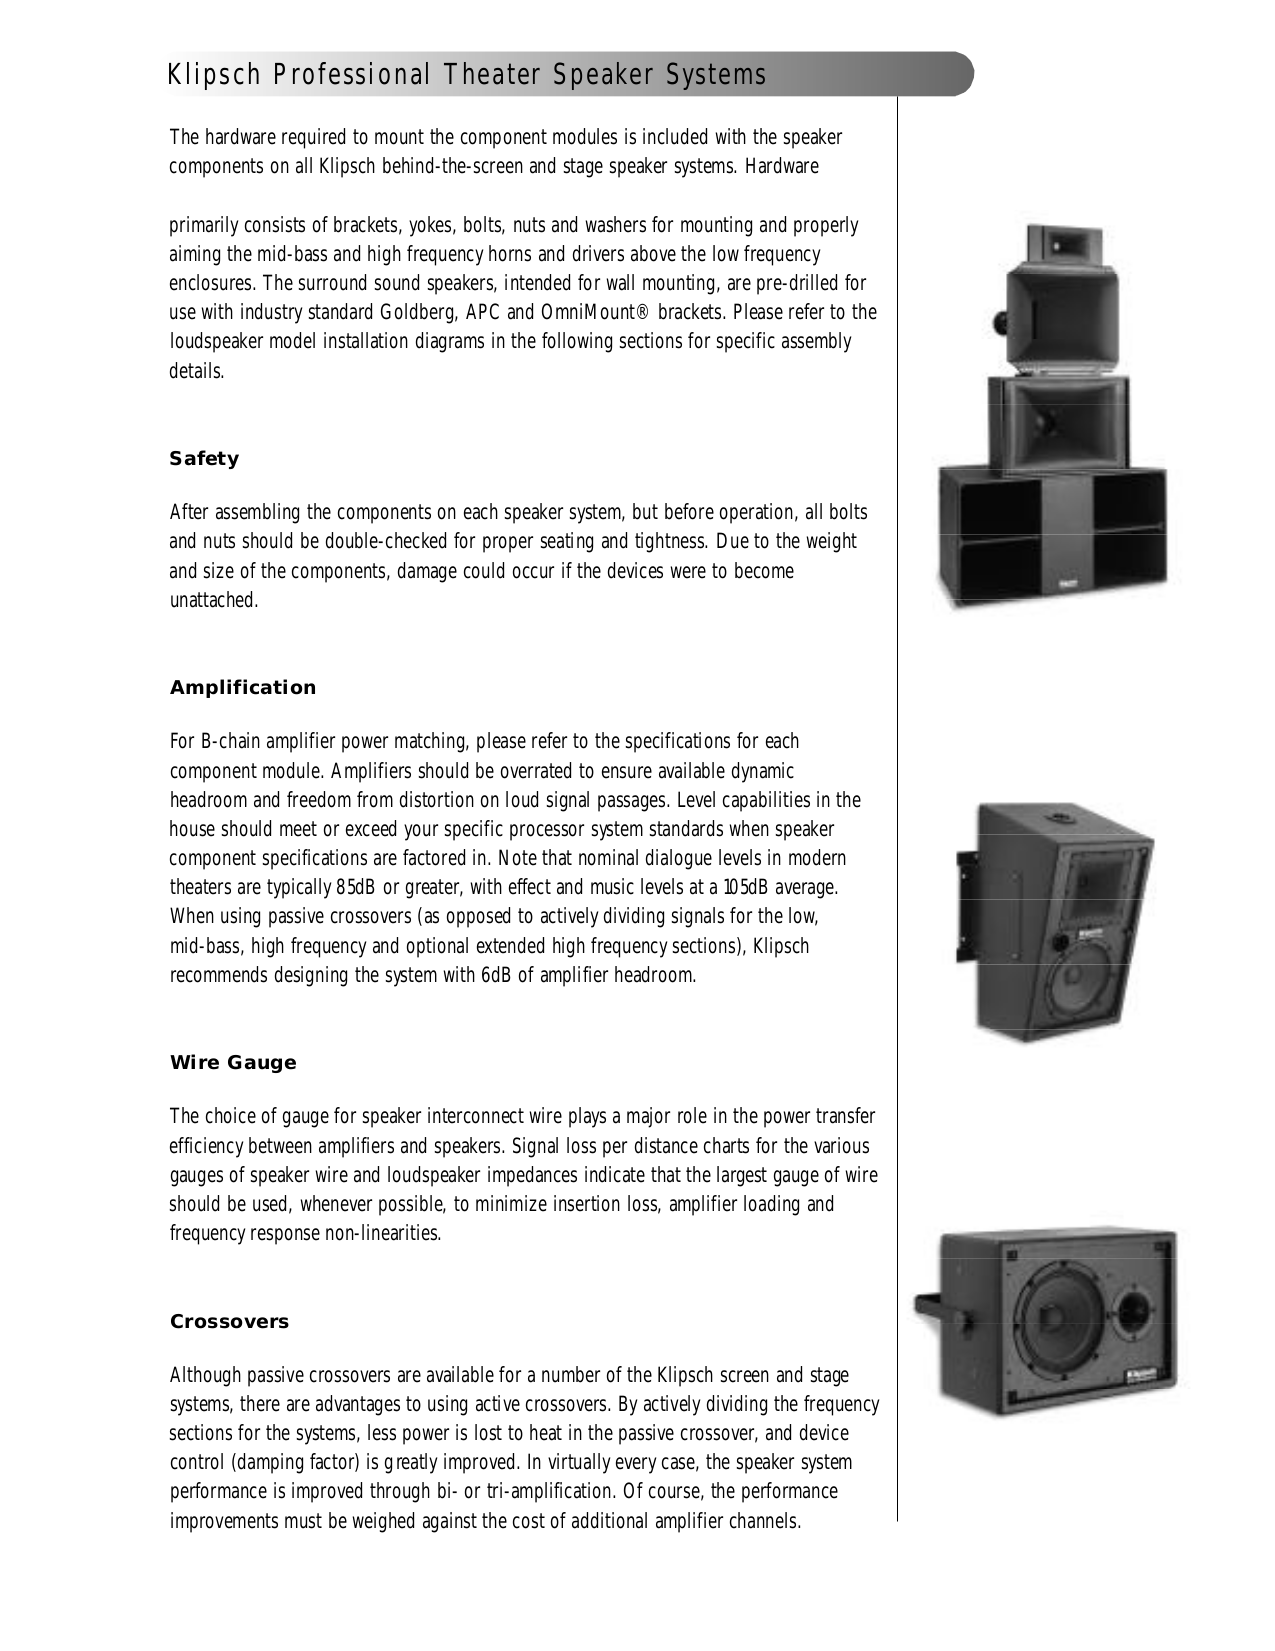 PDF manual for Klipsch Speaker KPT-MCM Grand